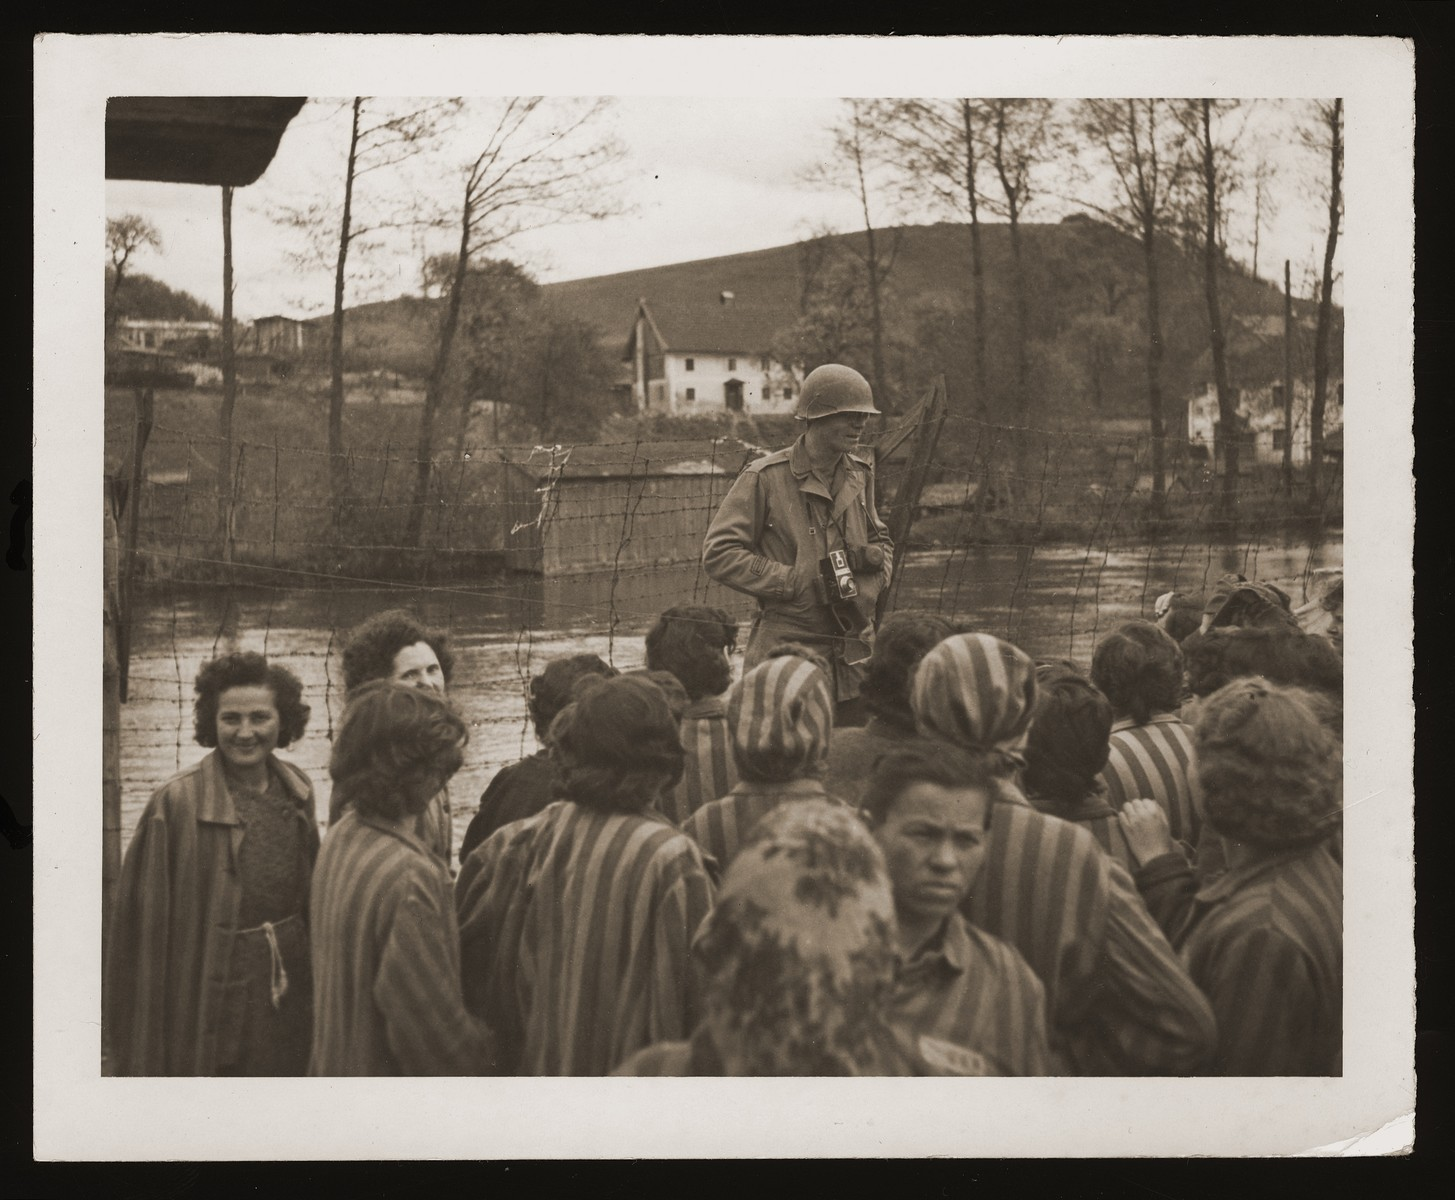 American Signal Corps photographer Sgt. Theodore Sizer of the 166th Signal Corps company, stands among a group of newly liberated, female survivors from Lenzing, a sub-camp of Mauthausen.